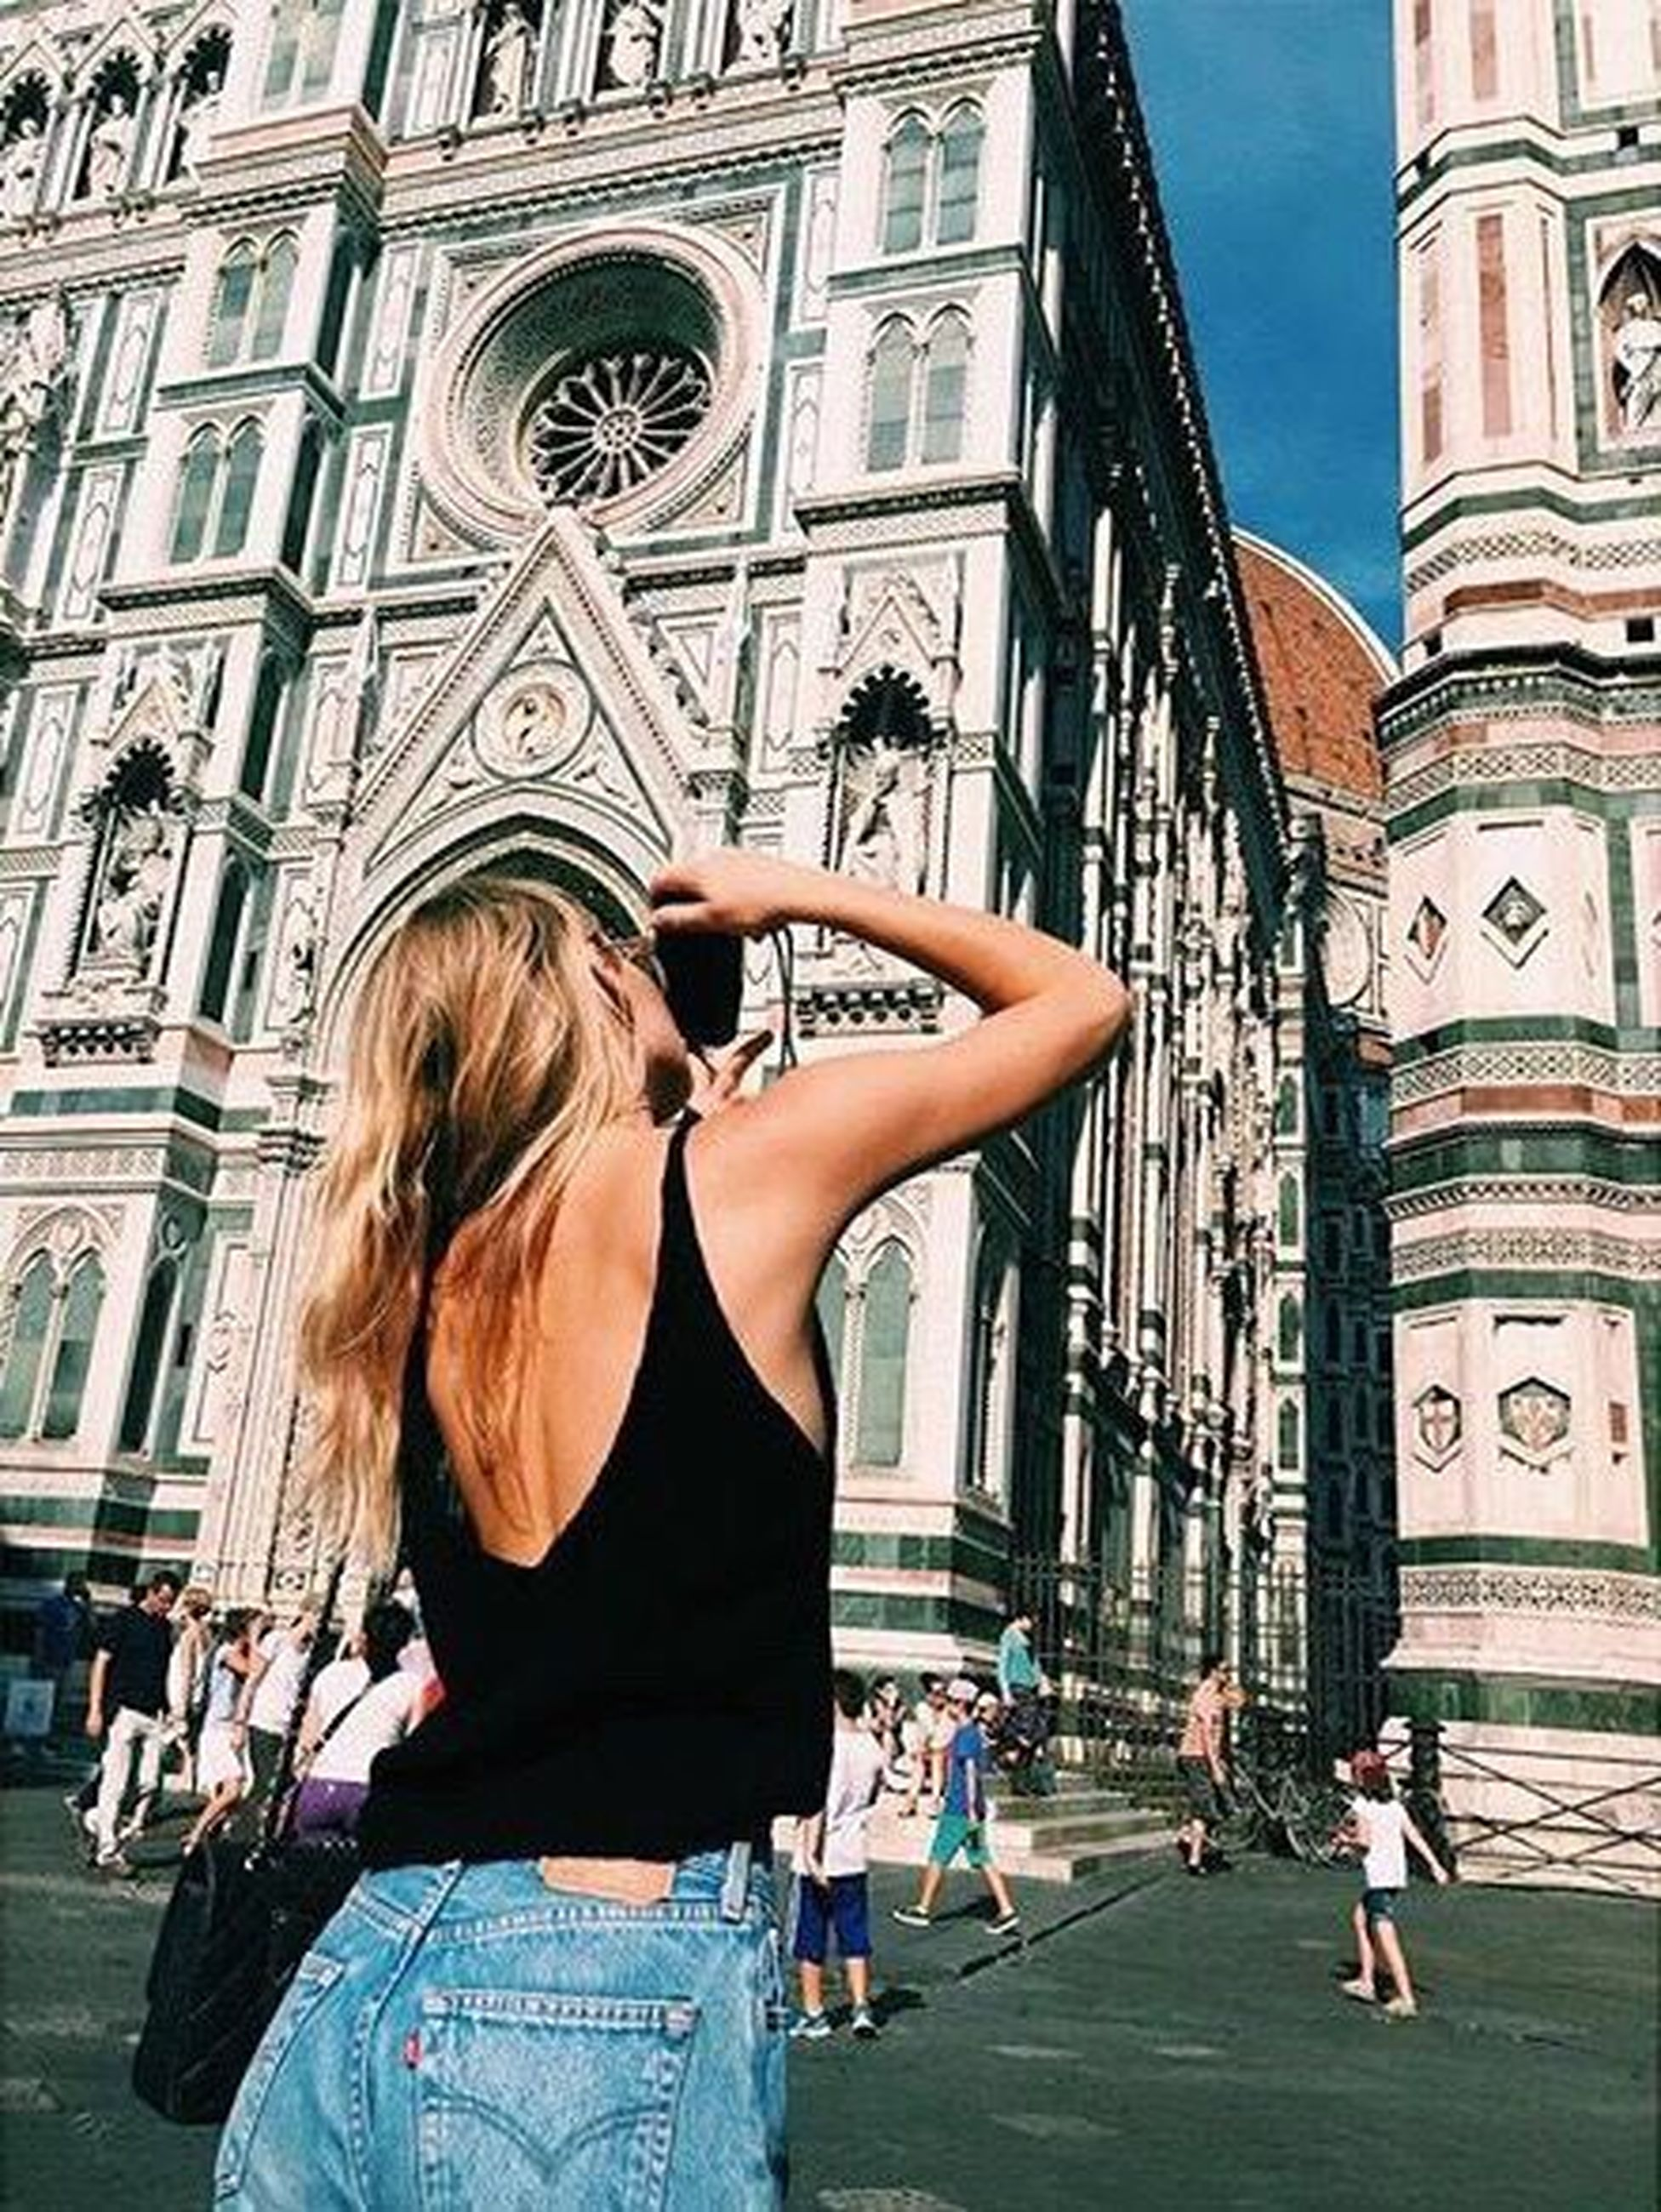 architecture, building exterior, built structure, lifestyles, leisure activity, famous place, person, tourism, city, capital cities, young adult, travel destinations, young women, tourist, international landmark, casual clothing, standing, travel